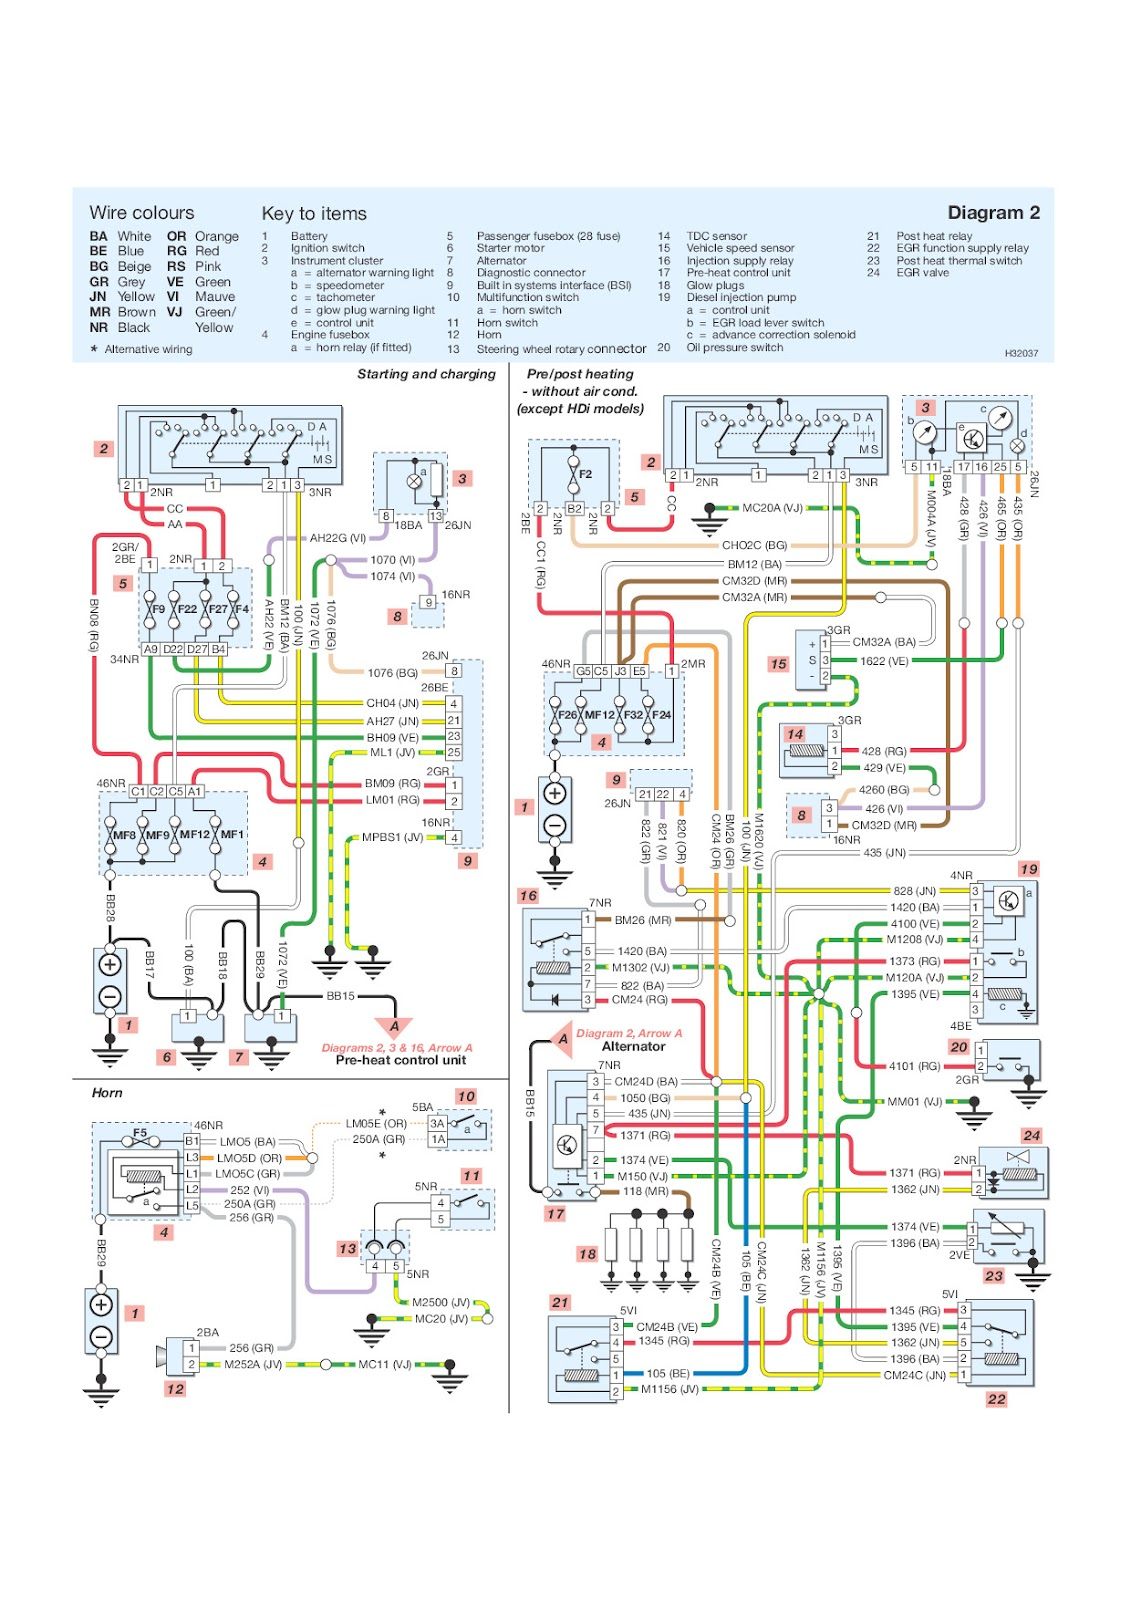 fuse box on peugeot 206 wiring diagrams scematic [ 1131 x 1600 Pixel ]